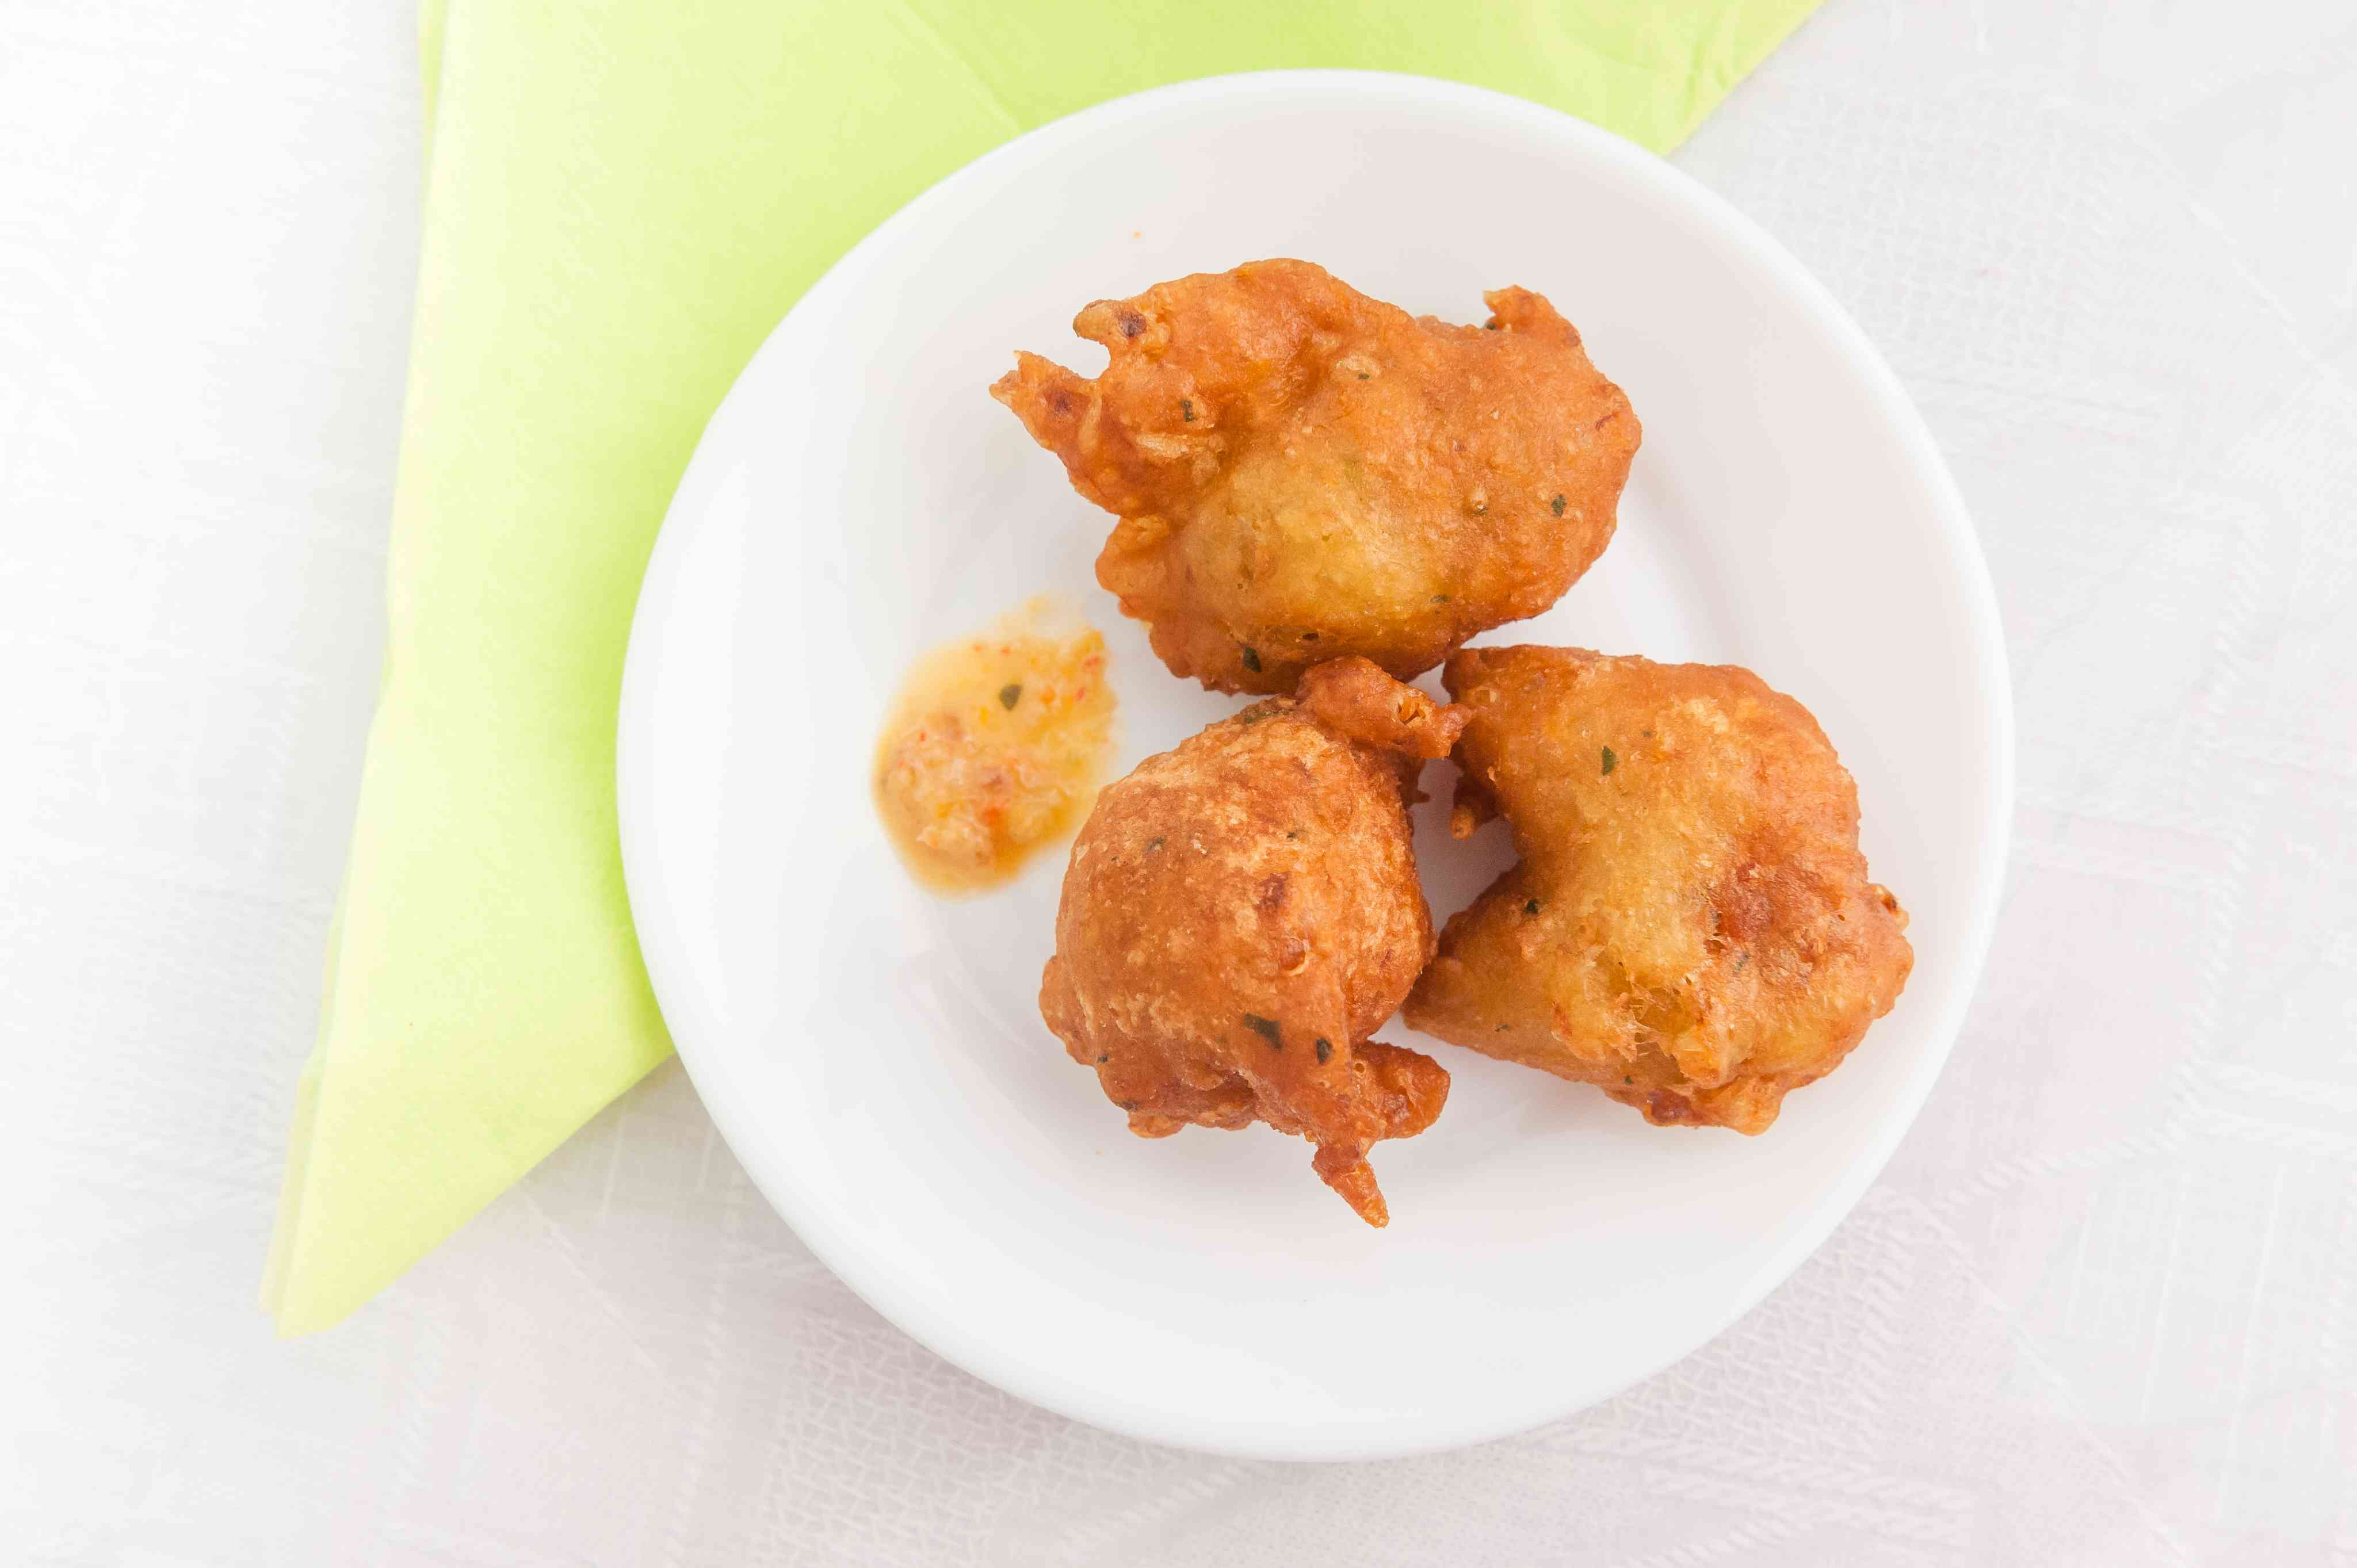 Three cod fritters on a white plate